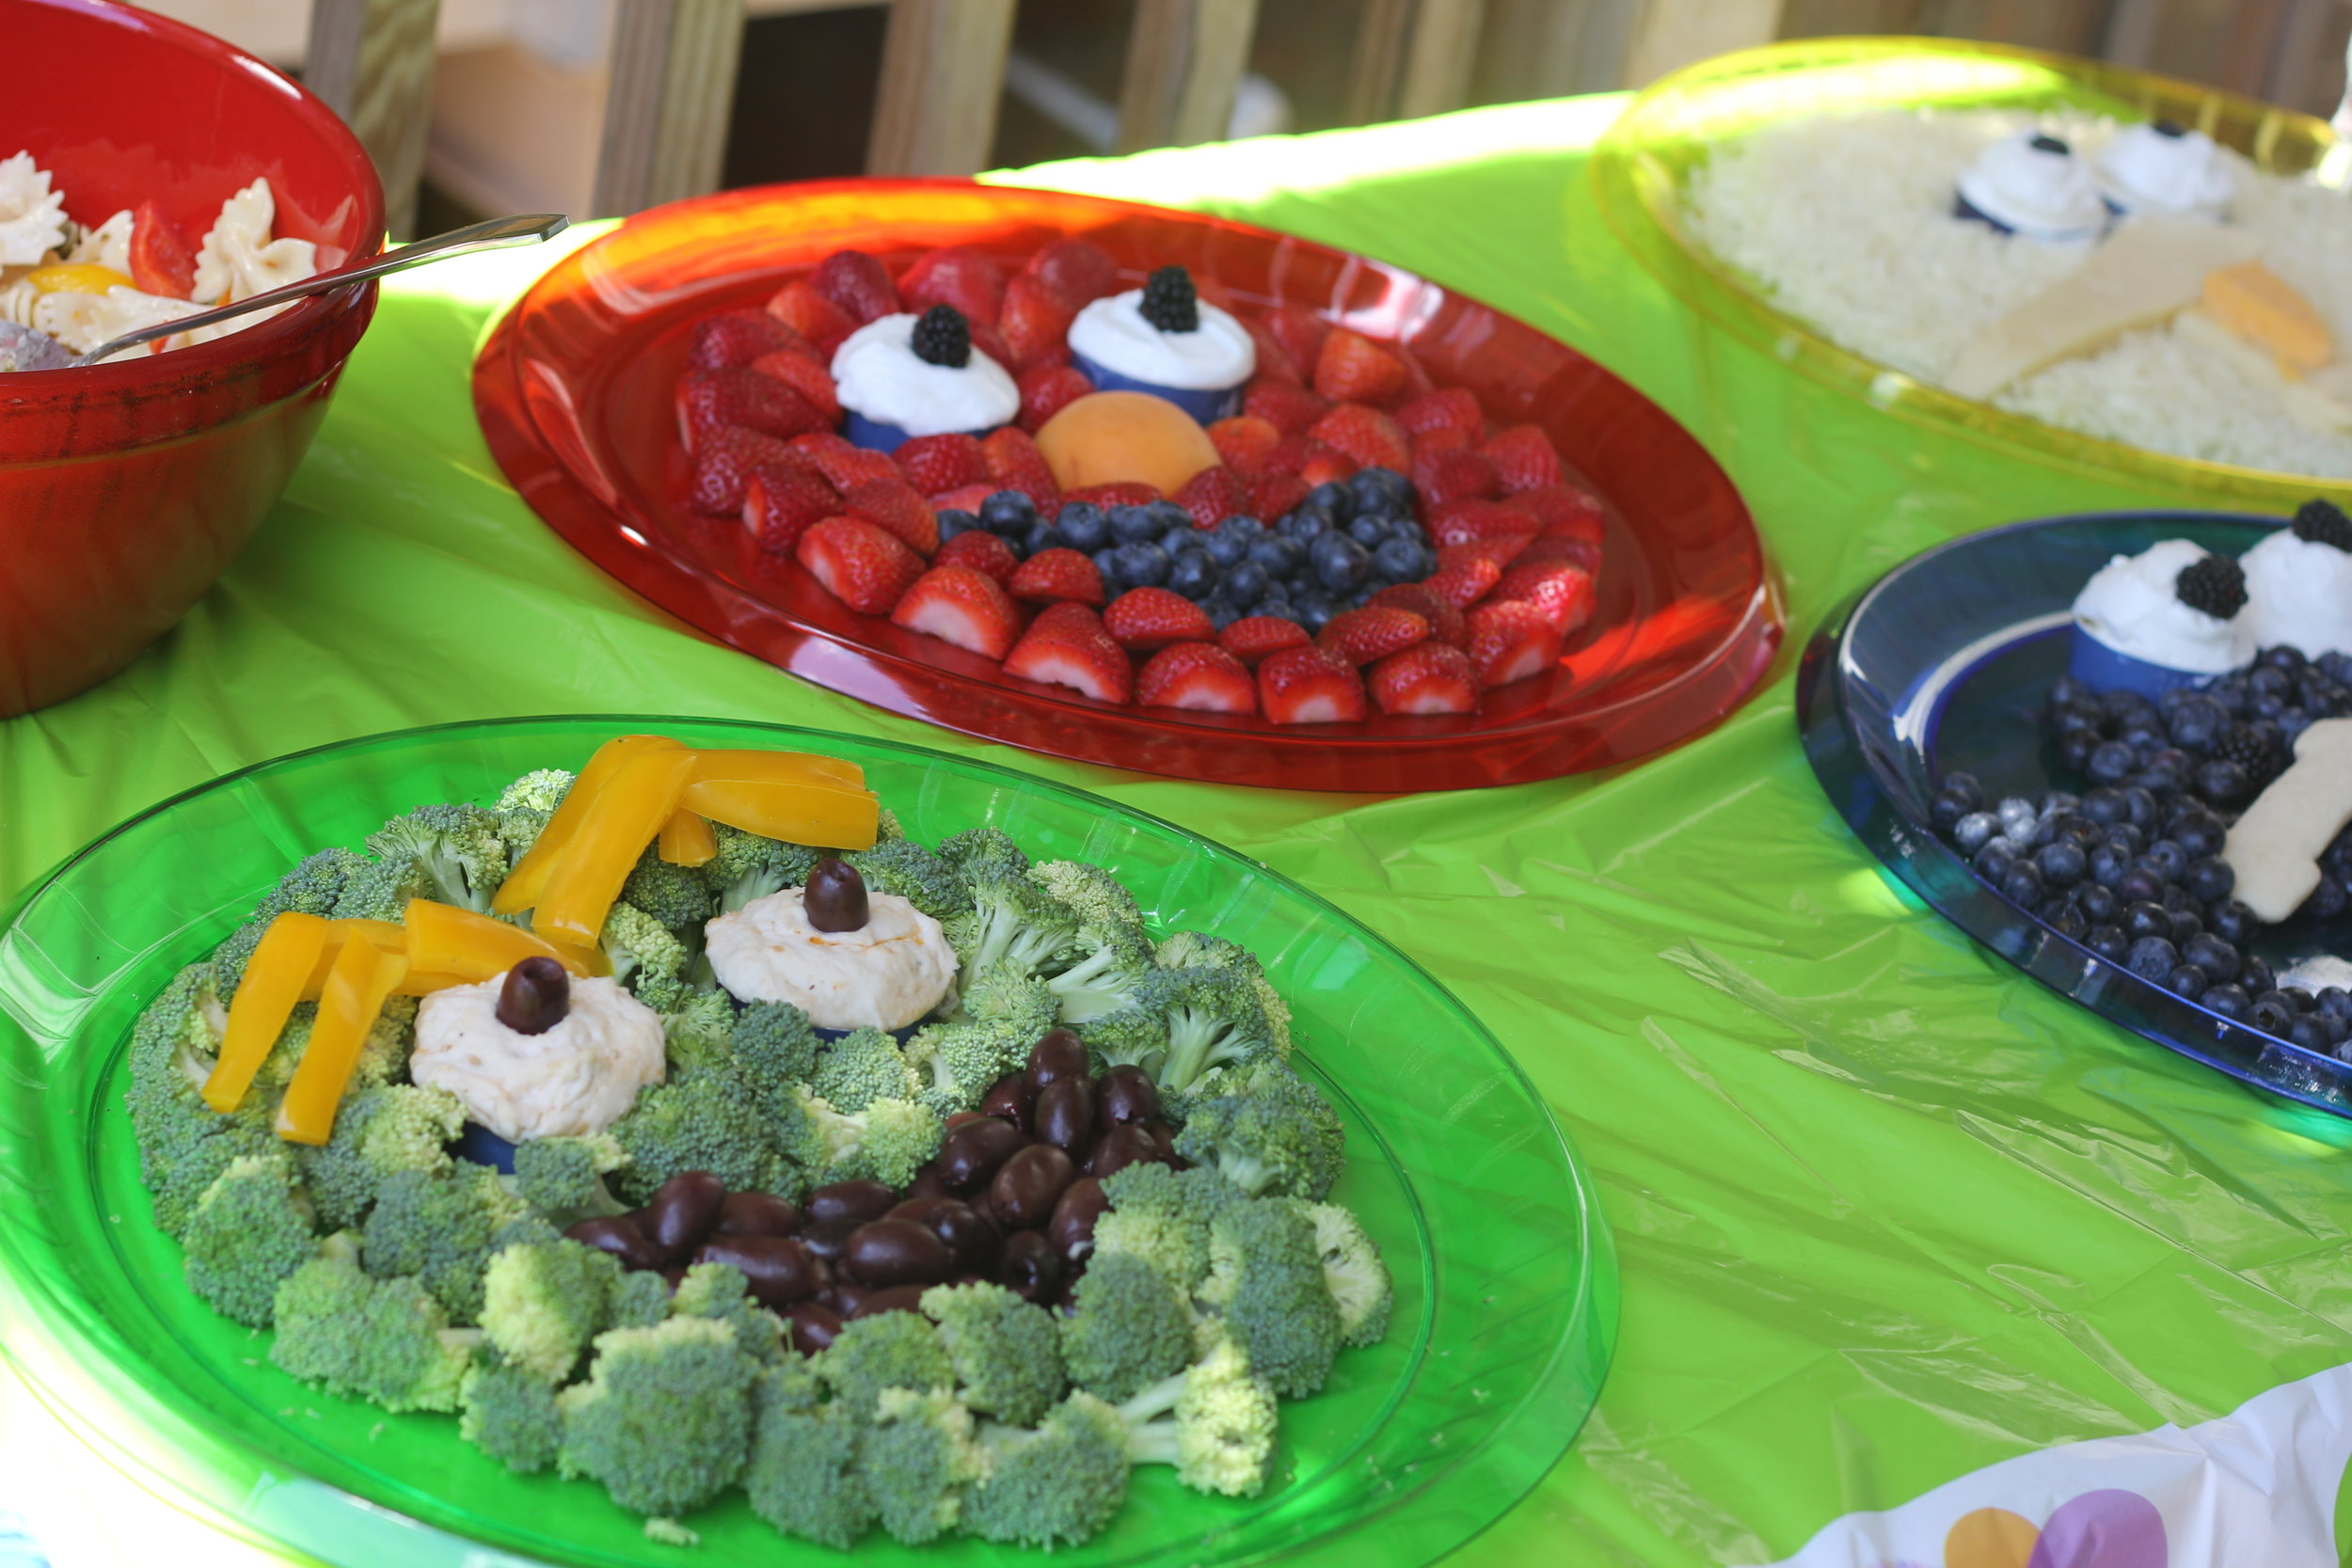 Sesame Street Fruit and Vegetable trays